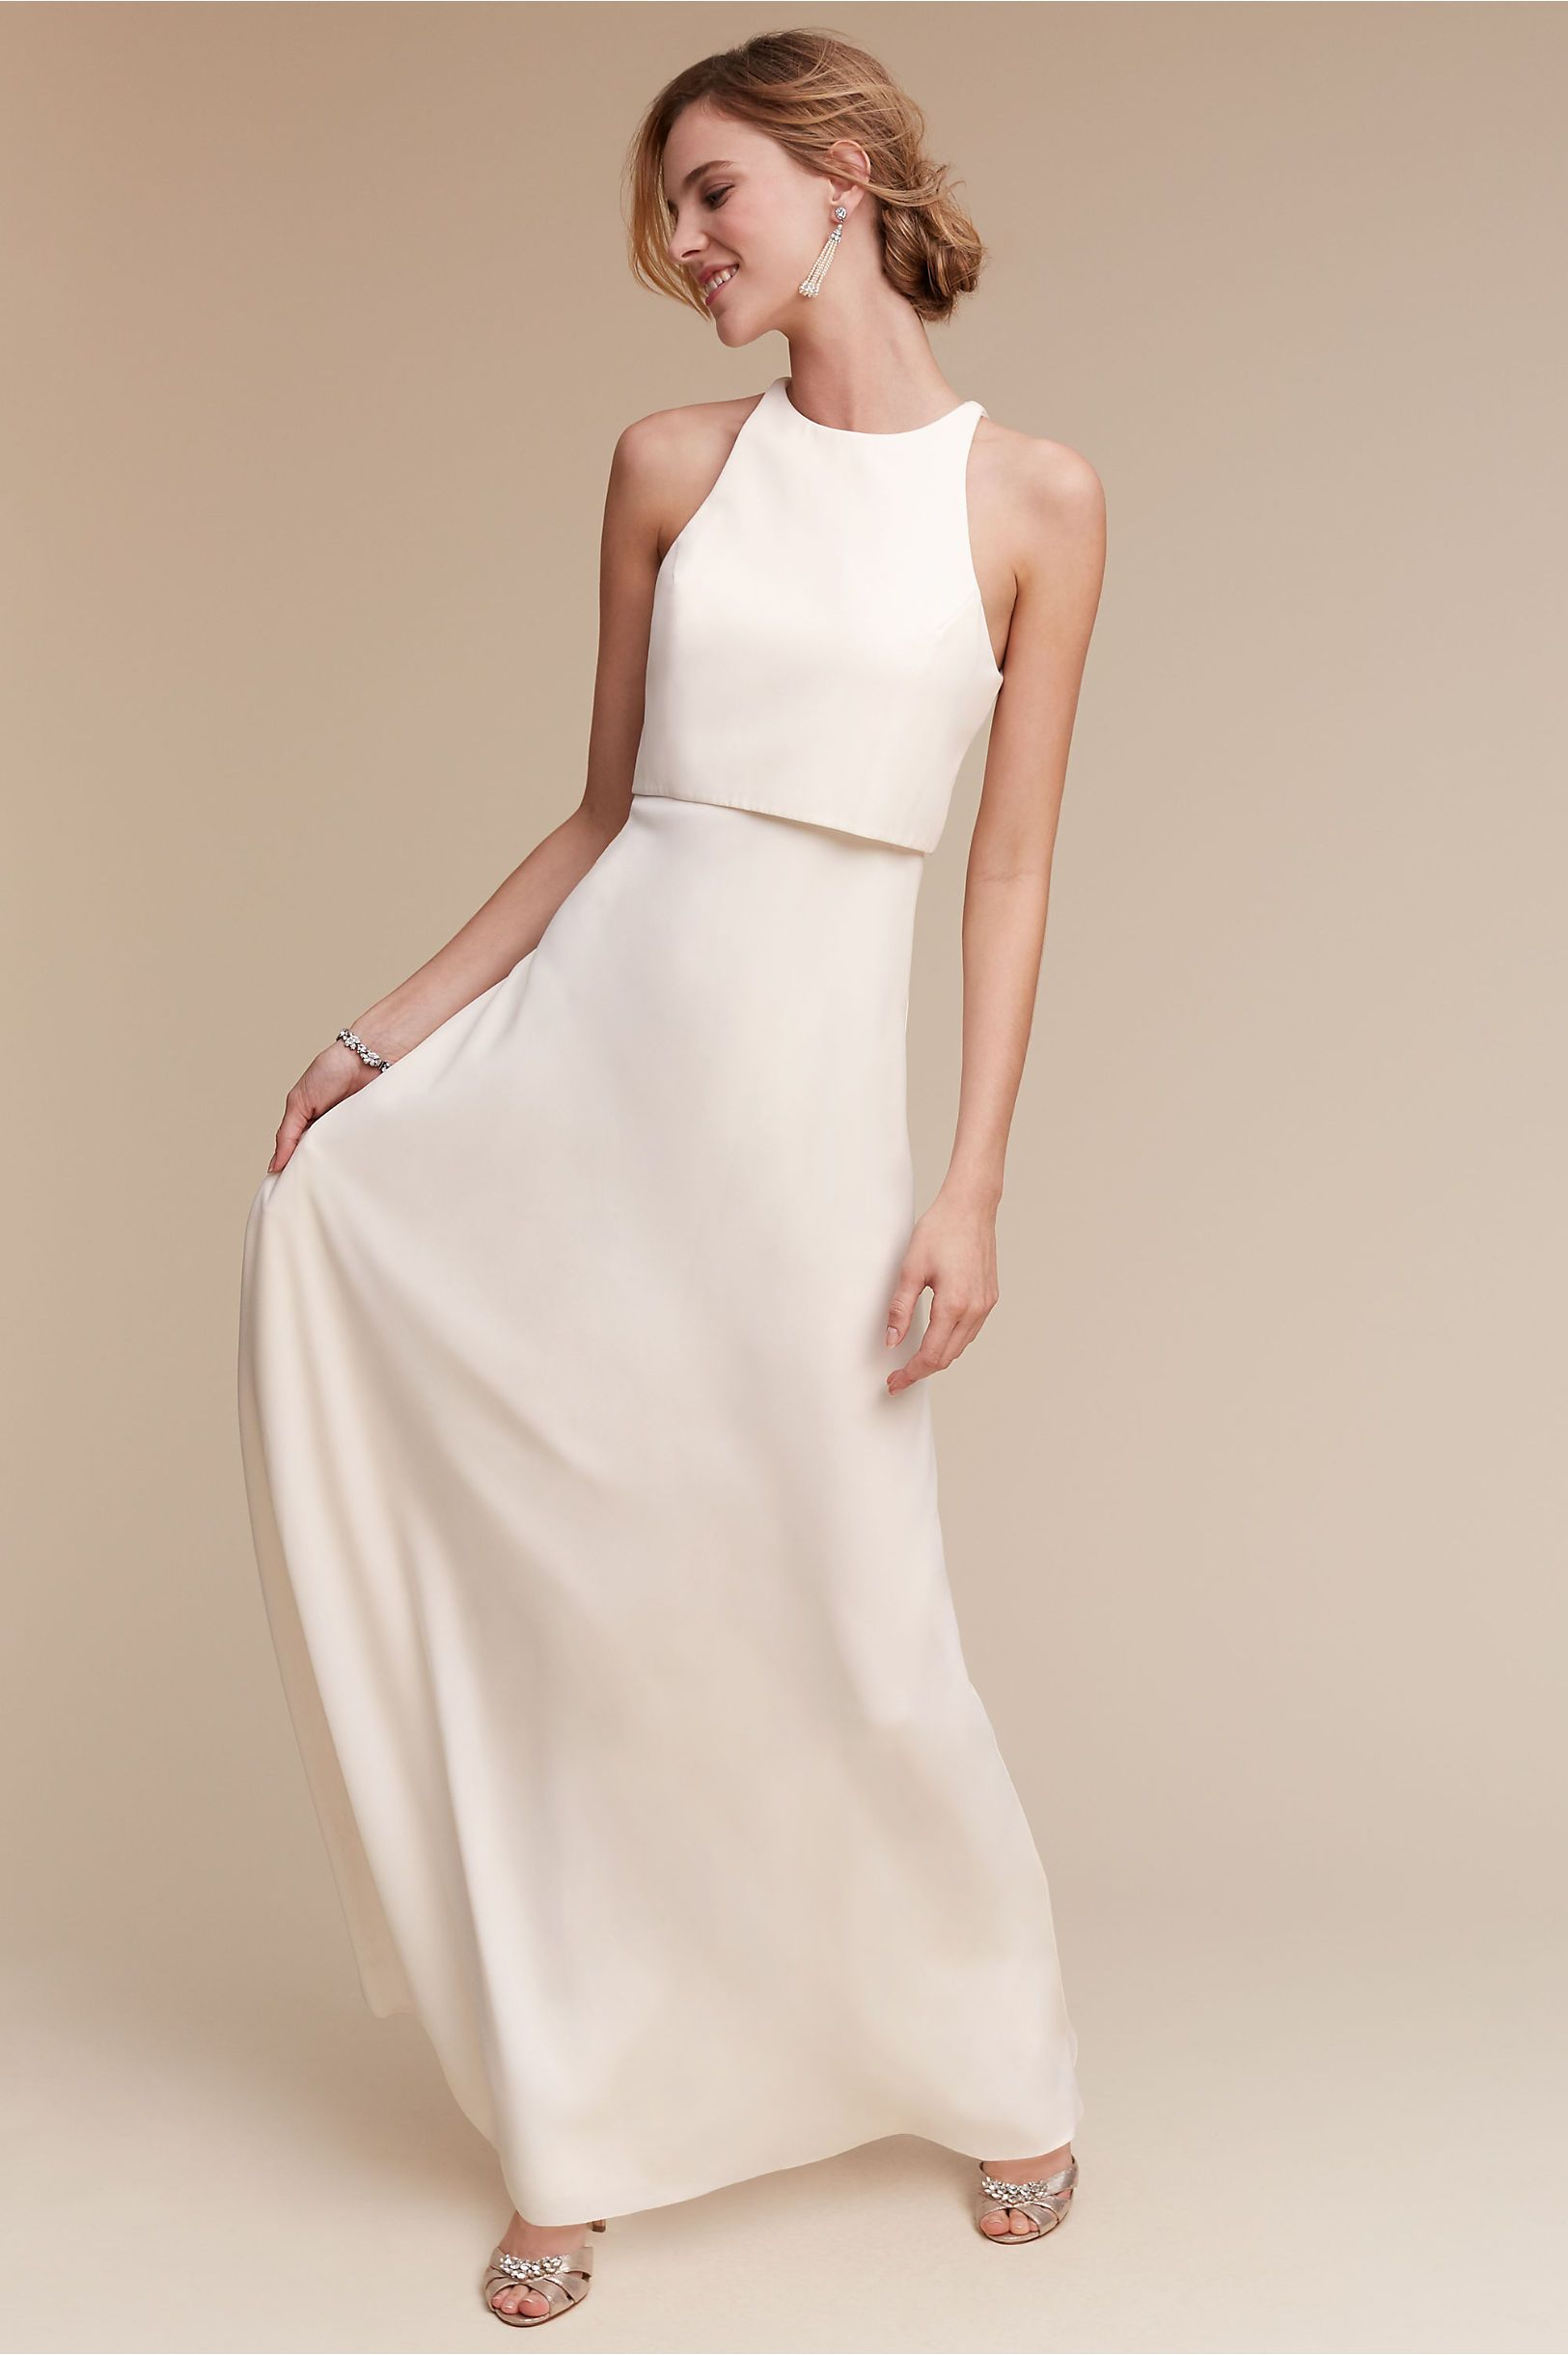 Little white wedding dress  BHLDN Iva Crepe Maxi in Bridesmaids Bridesmaid Dresses at BHLDN